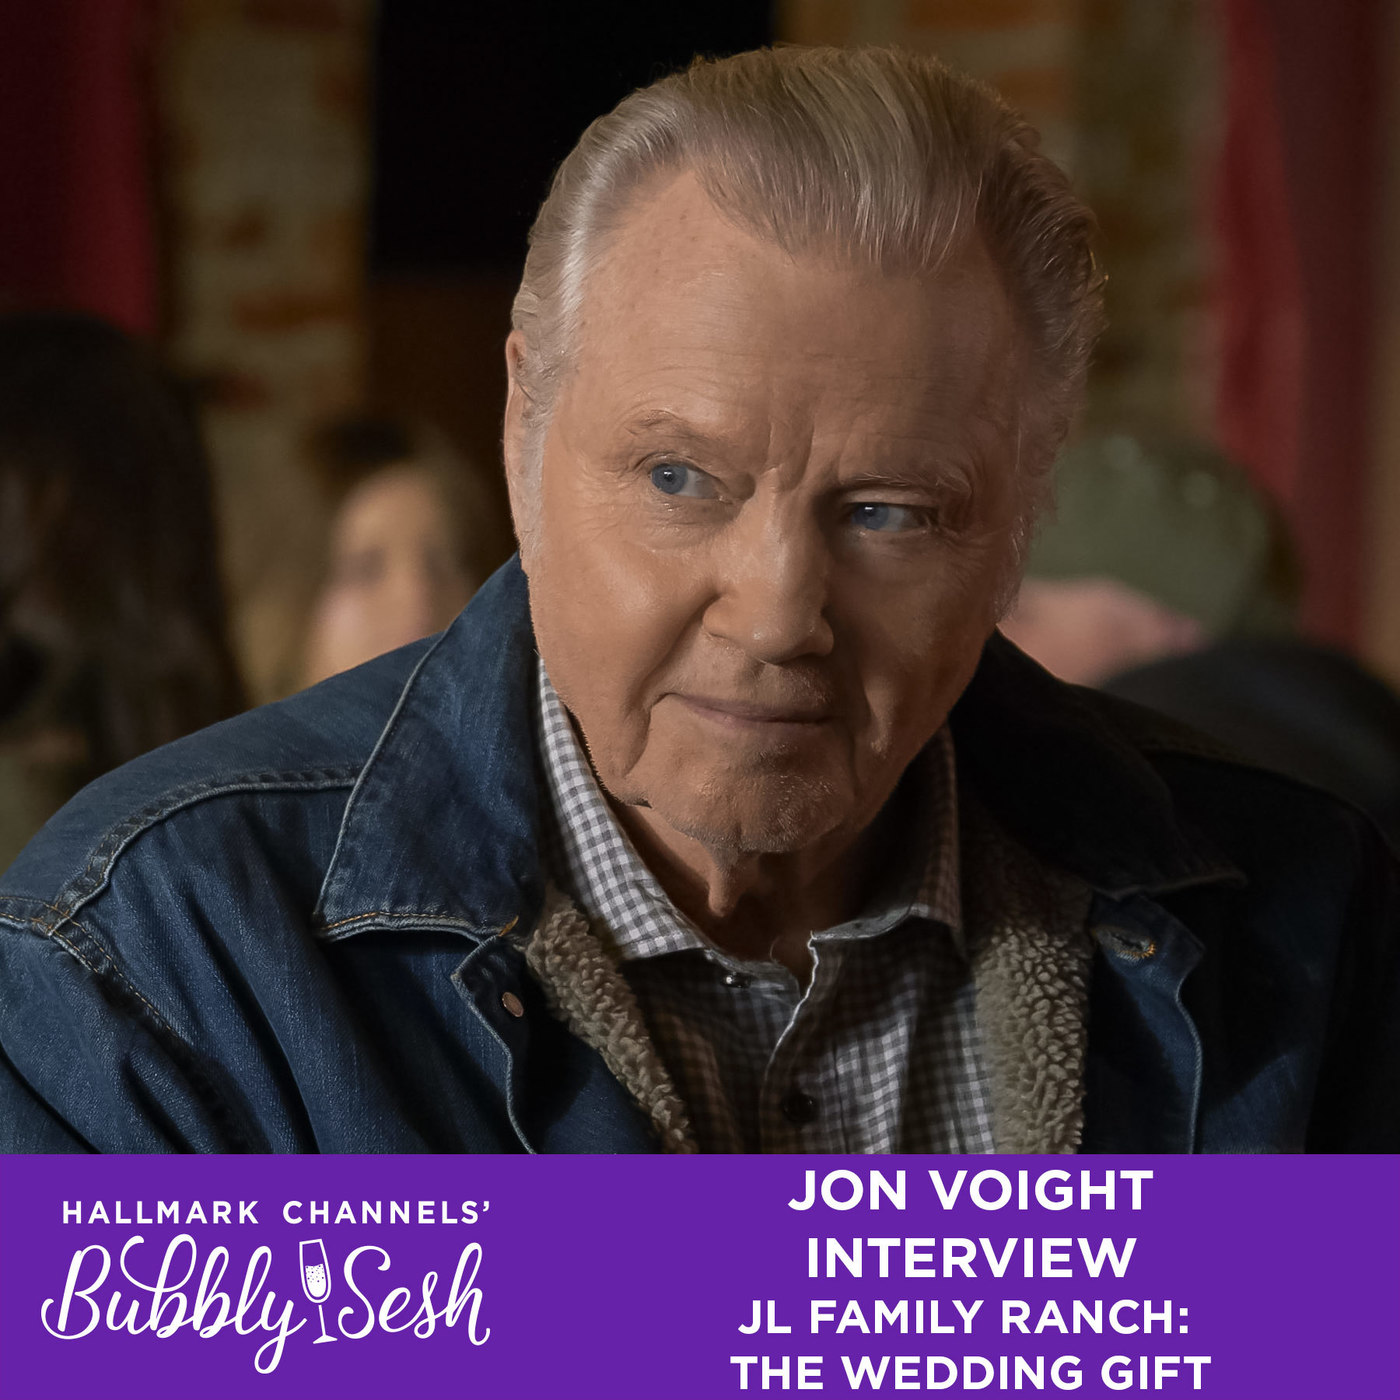 Jon Voight Interview, JL Family Ranch: The Wedding Gift